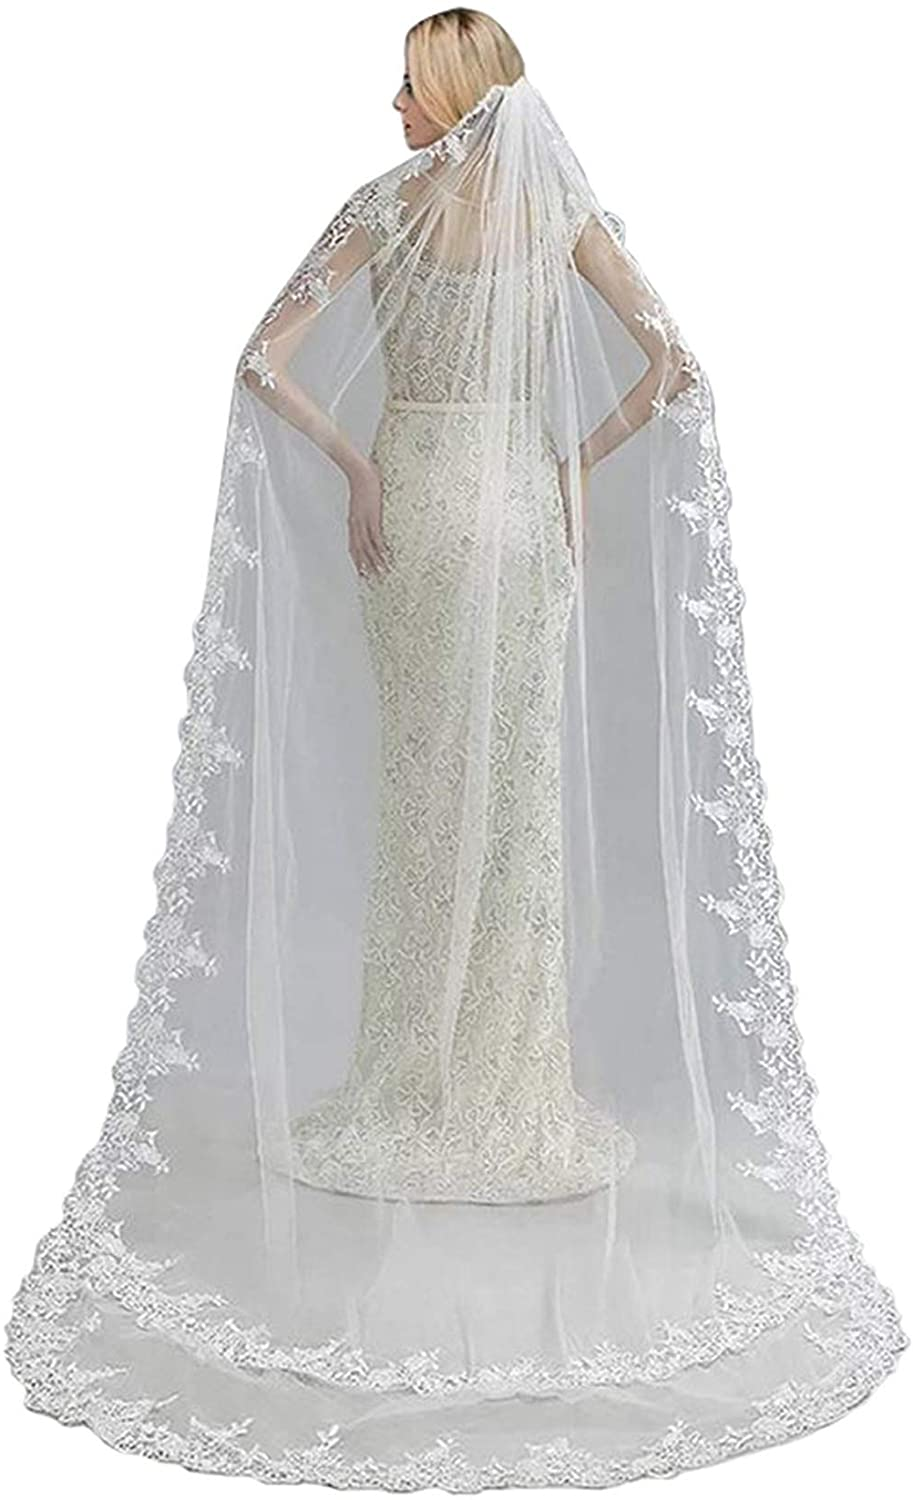 Wedding Veils 1 Tier Cathedral Ivory Elegant Floral Lace Edge Bridal Veil with Comb